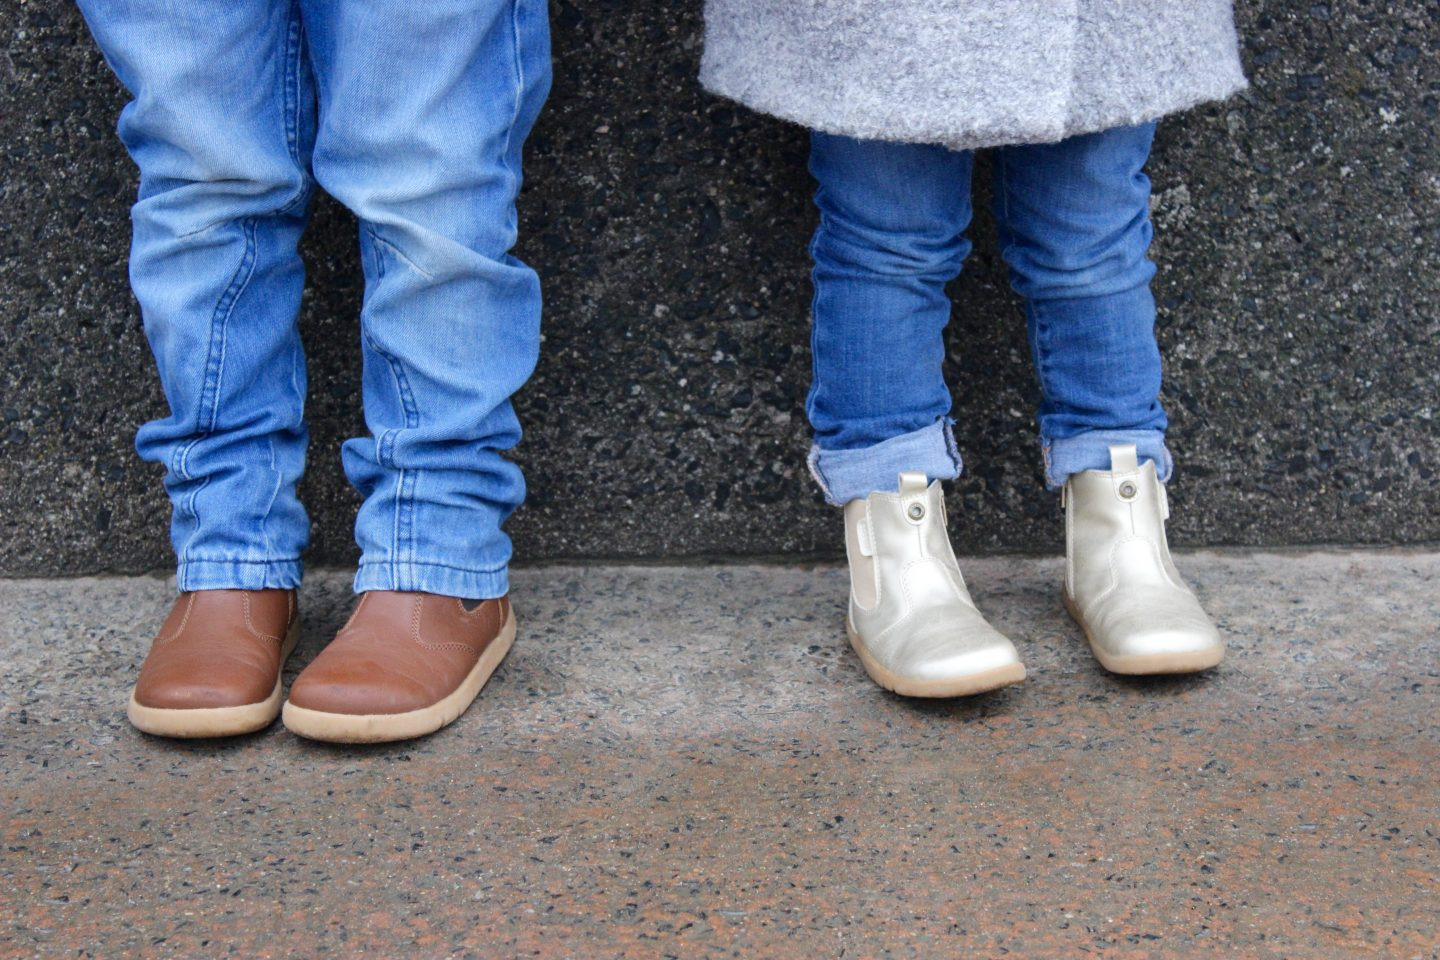 What the Kids Wore | Bobux Boots